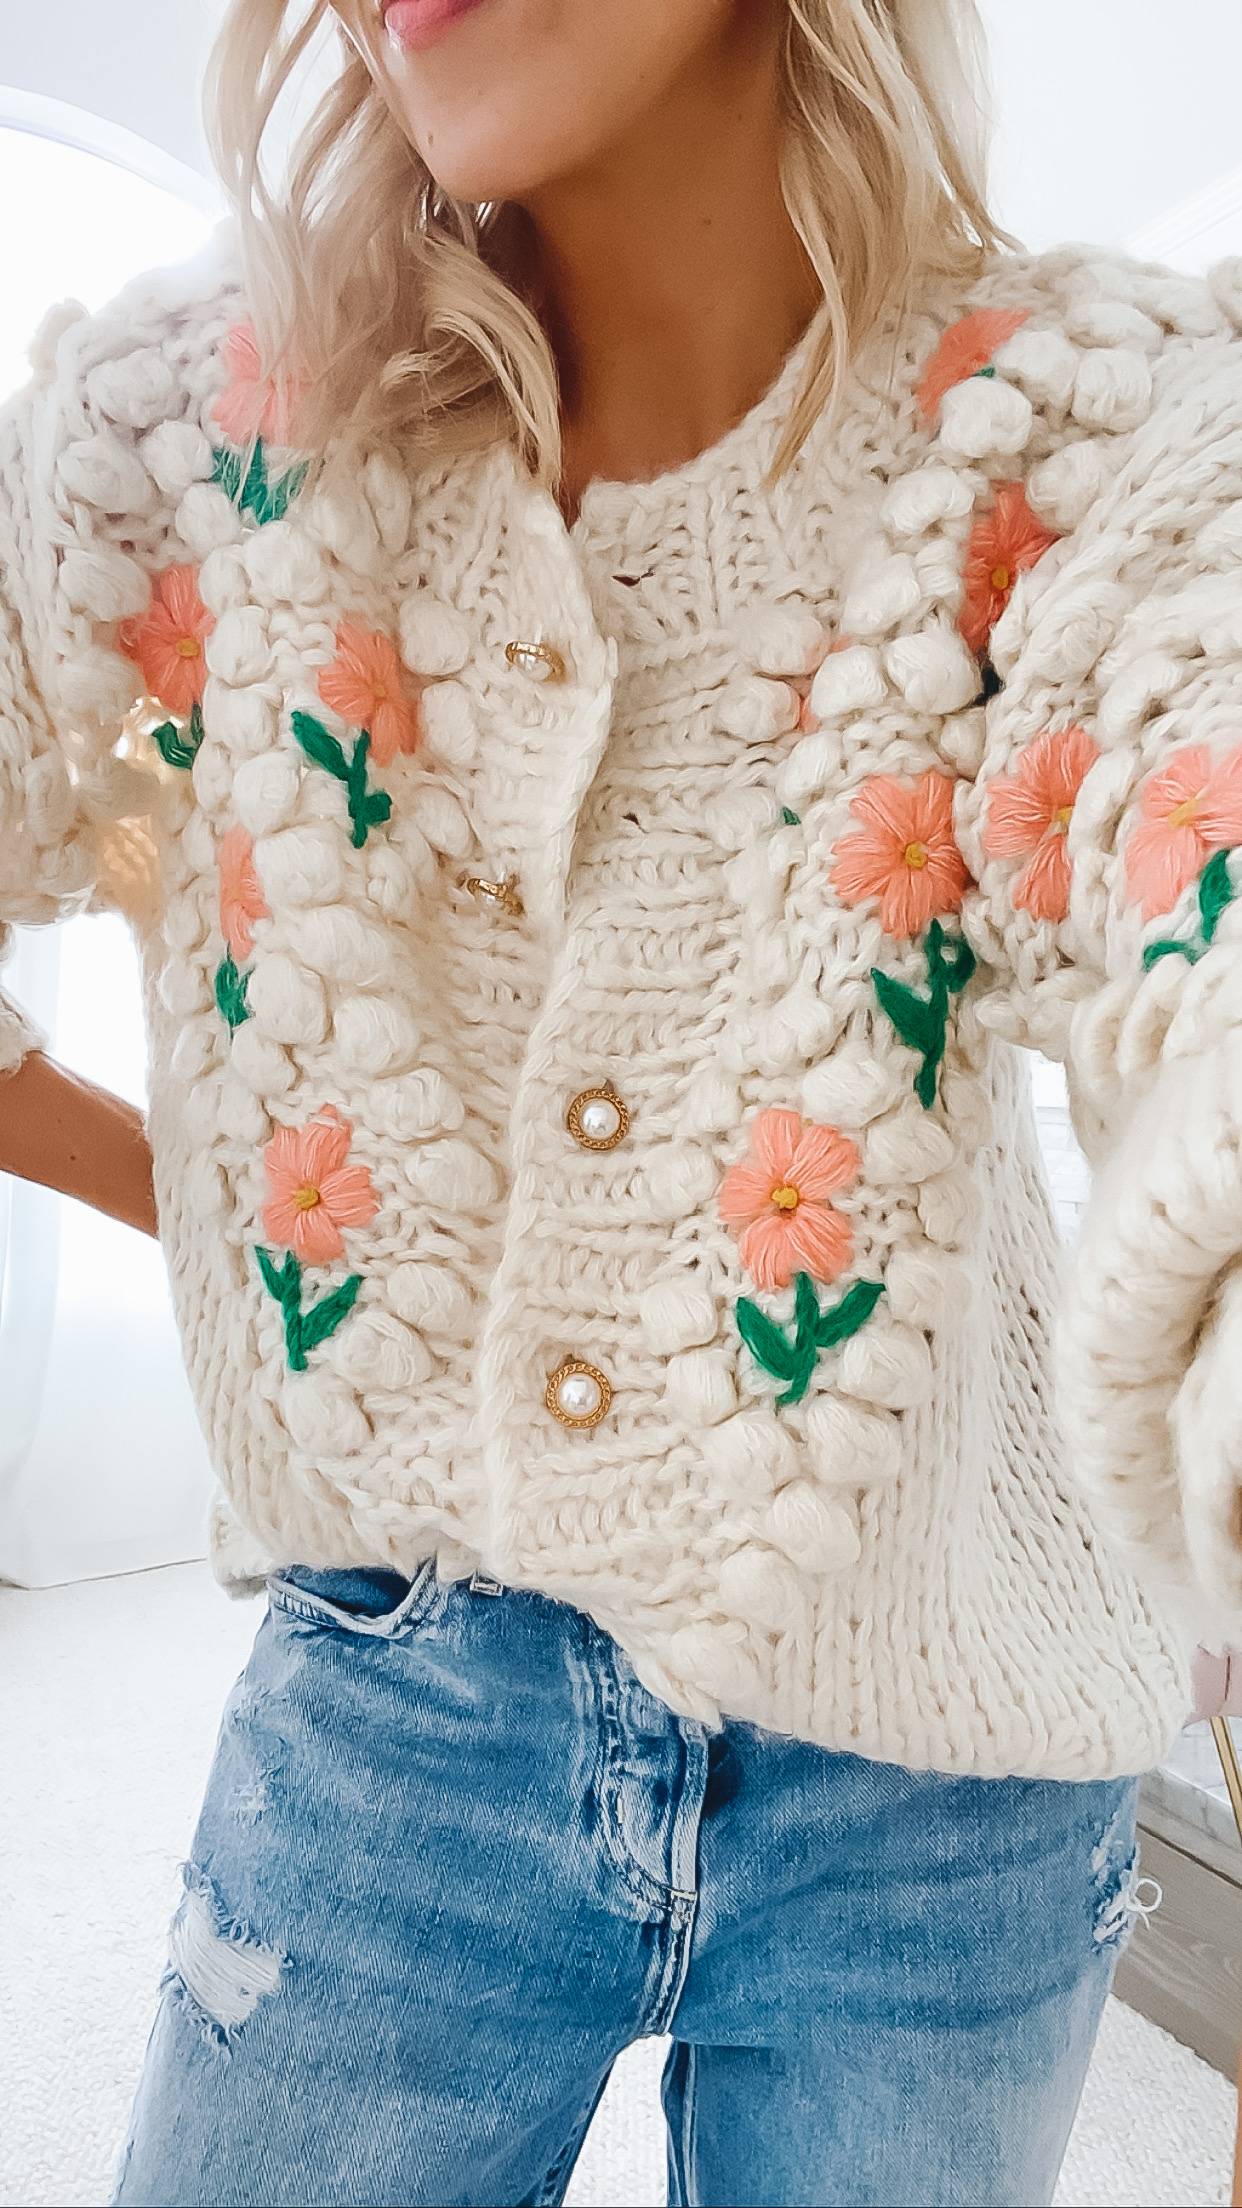 Vita Grace Eloise cardigan sweater, featured by San Francisco style blogger Lombard and Fifth.